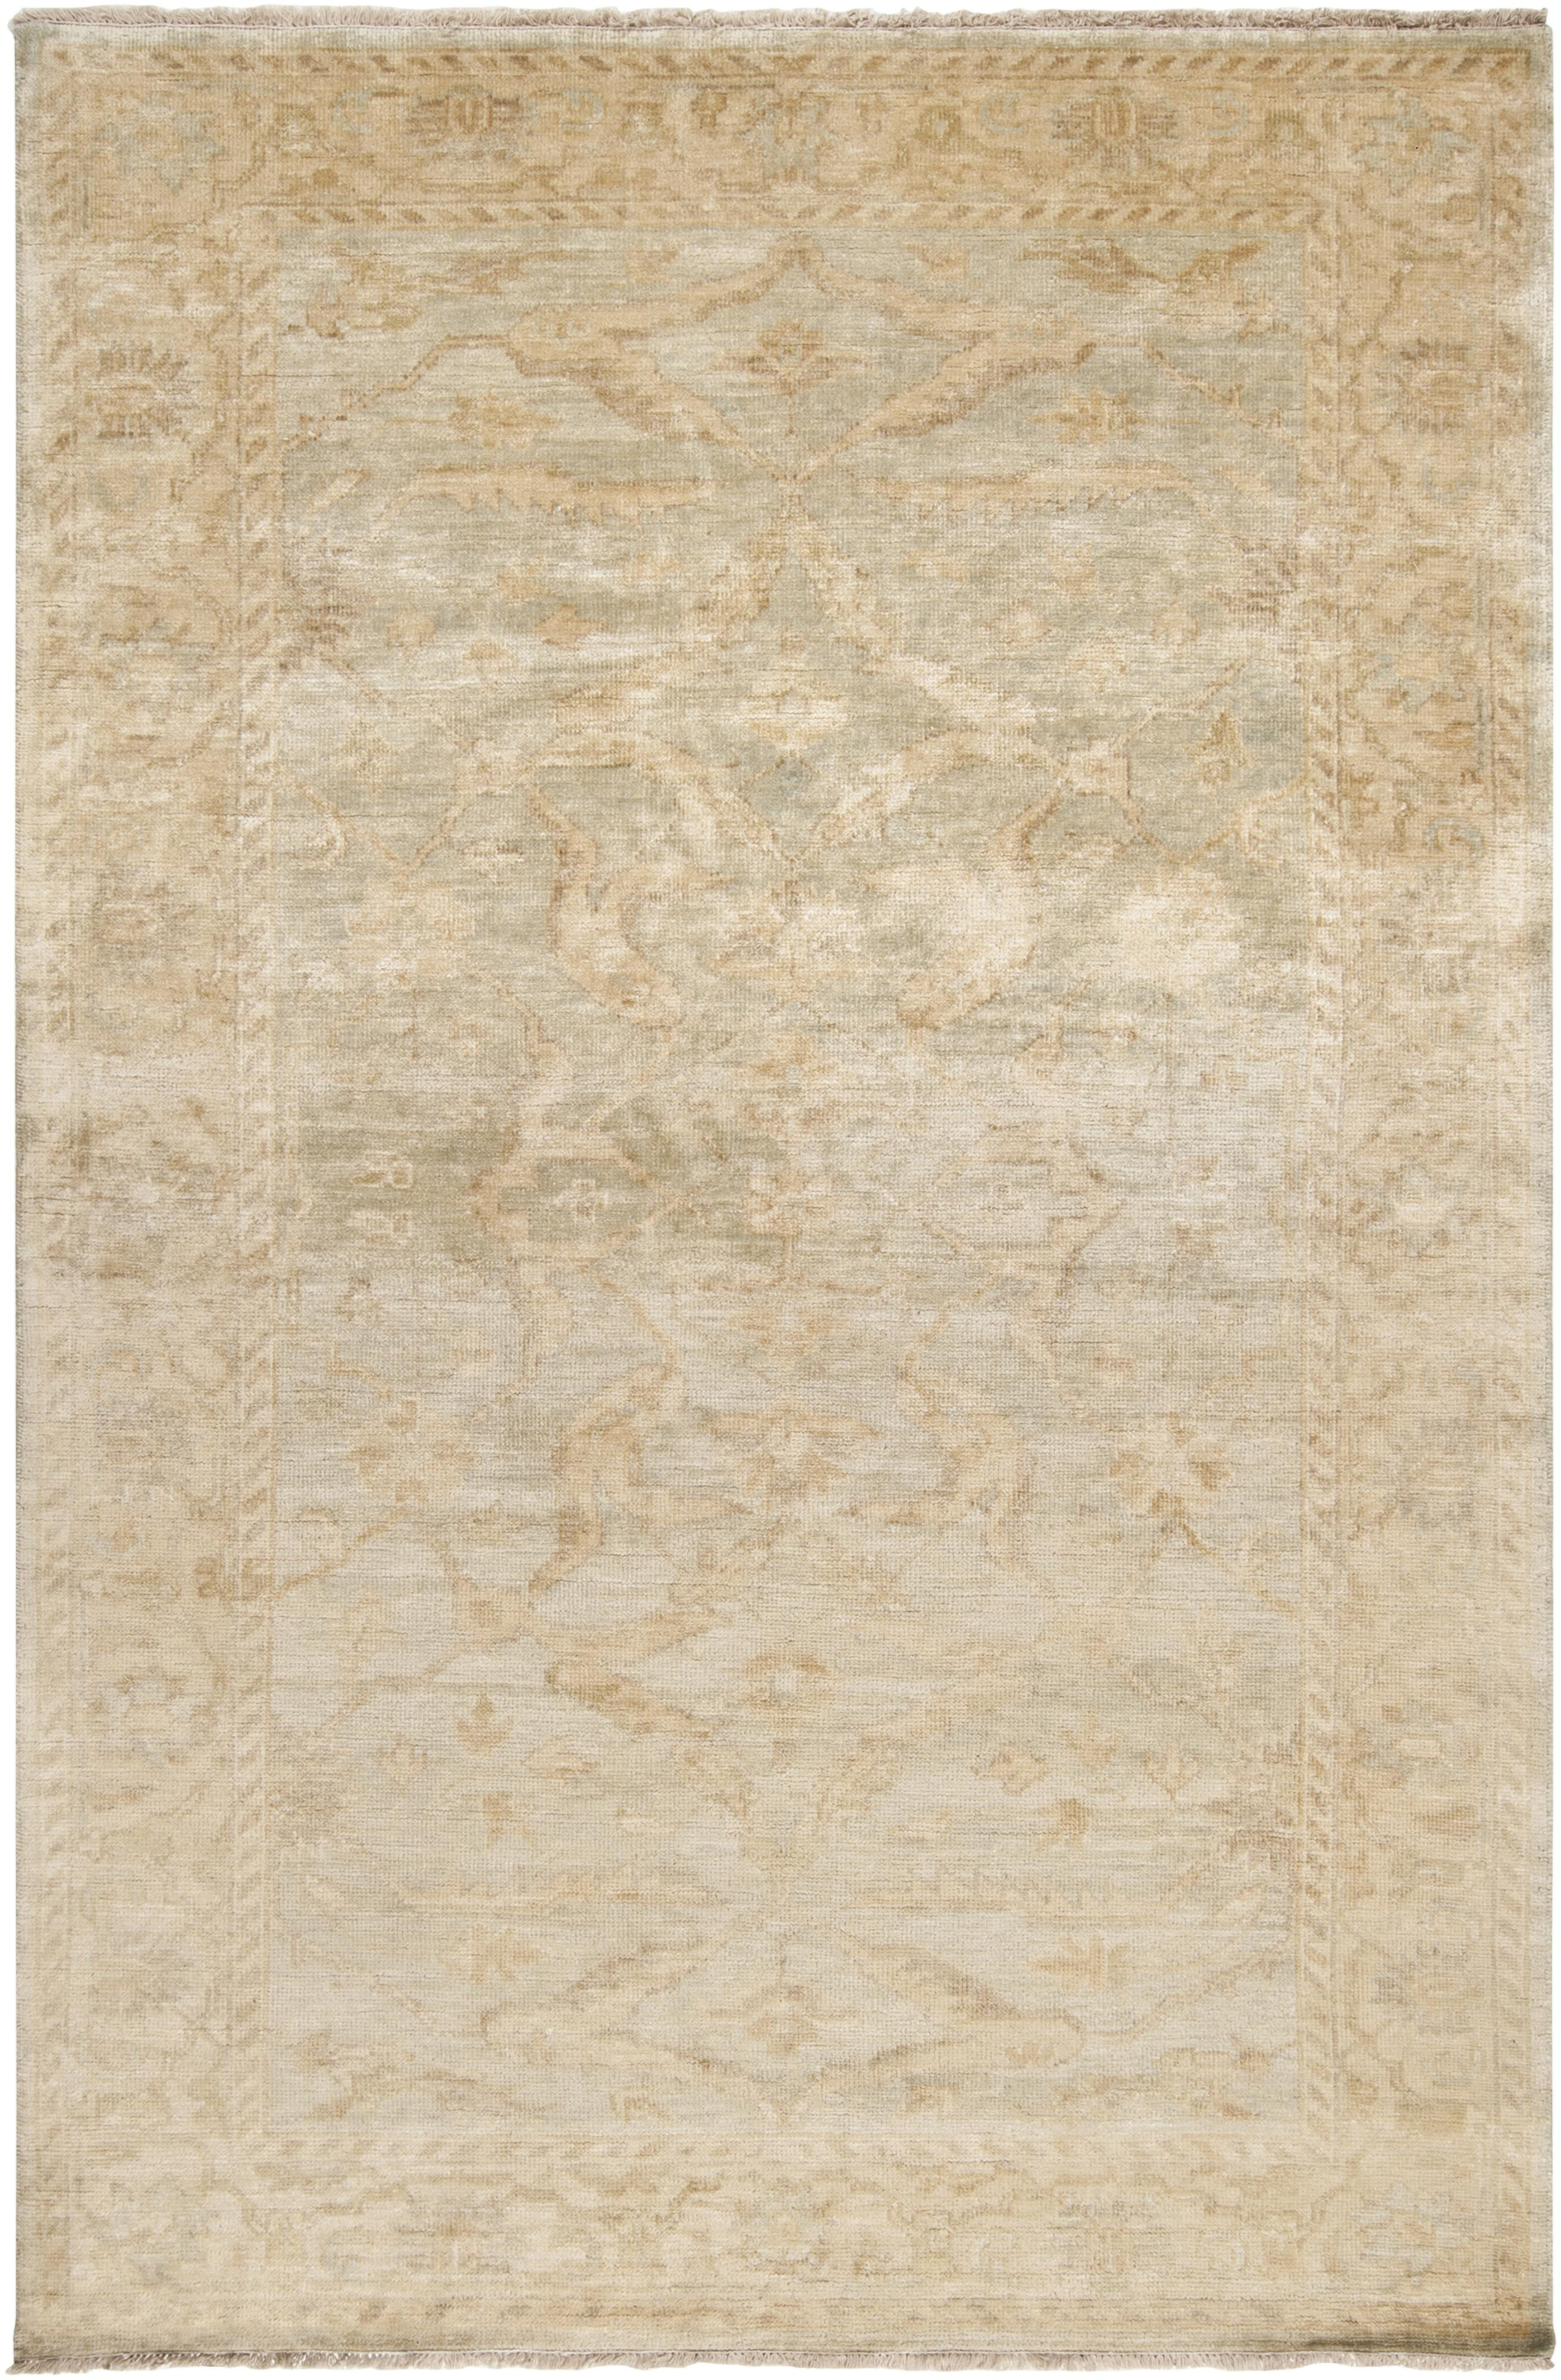 Surya Rugs Hillcrest 2' x 3' - Item Number: HIL9010-23